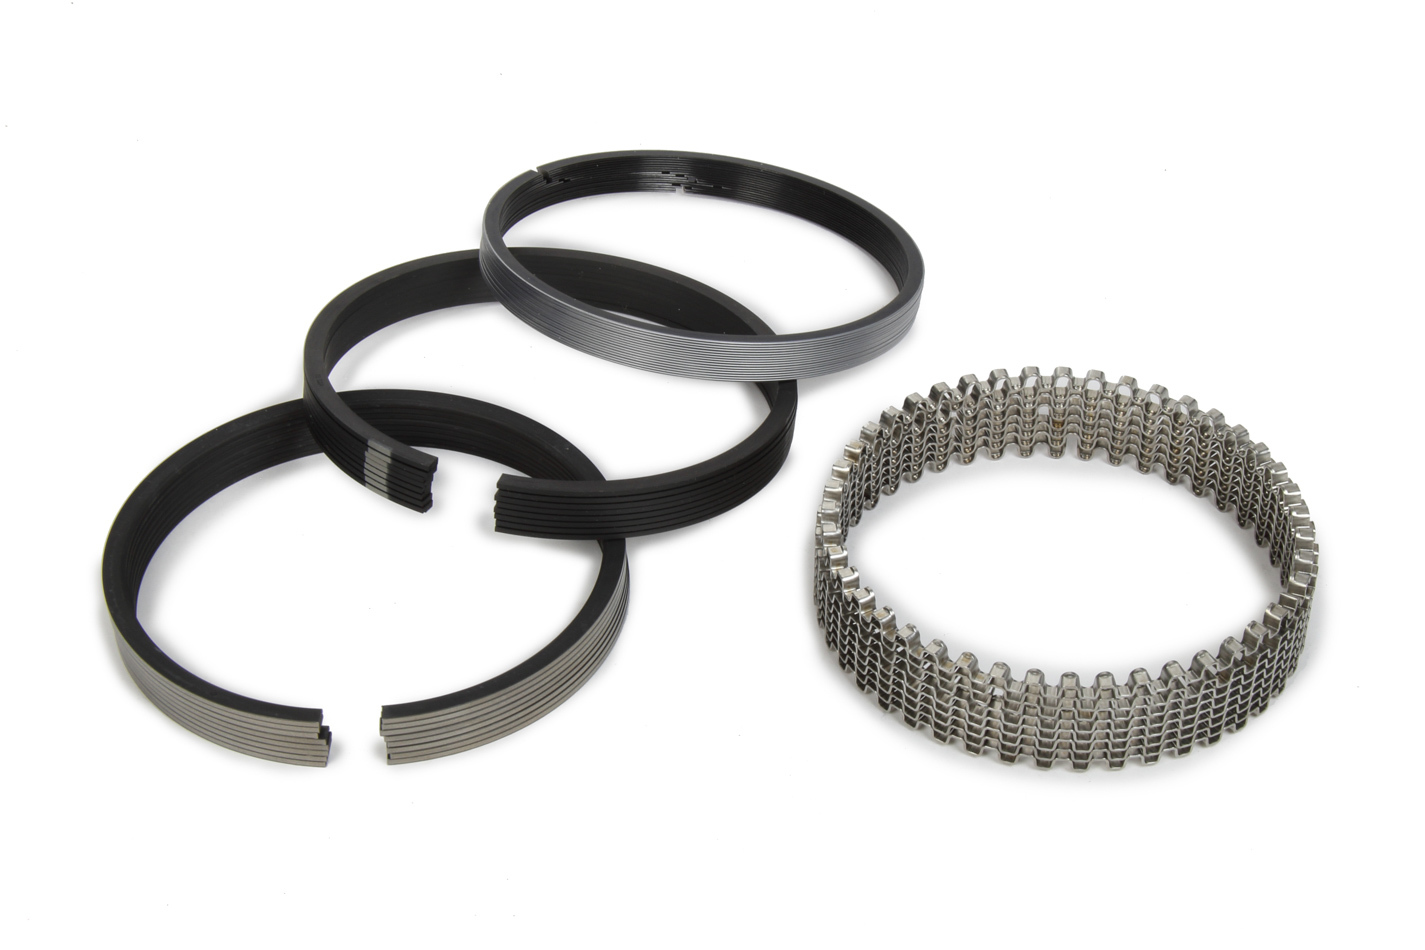 Michigan 77 315-0036.040 Piston Rings, 4.040 in Bore, 1/16 x 1/16 x 3/16 in Thick, Standard Tension, Plasma Moly, 8 Cylinder, Kit